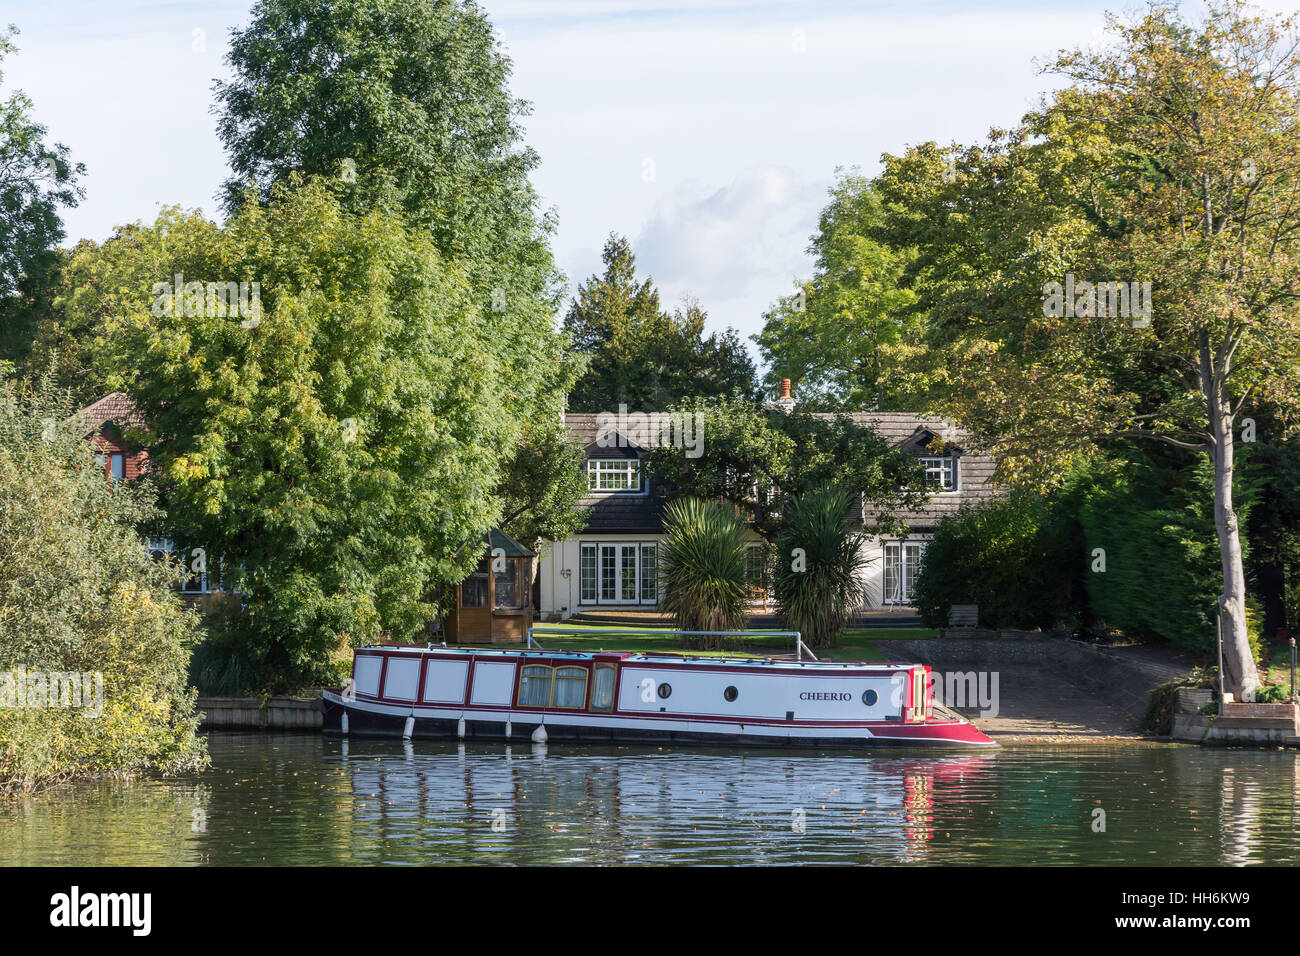 Riverside house and canal boat by River Thames, Runnymede, Surrey, England, United Kingdom Stock Photo